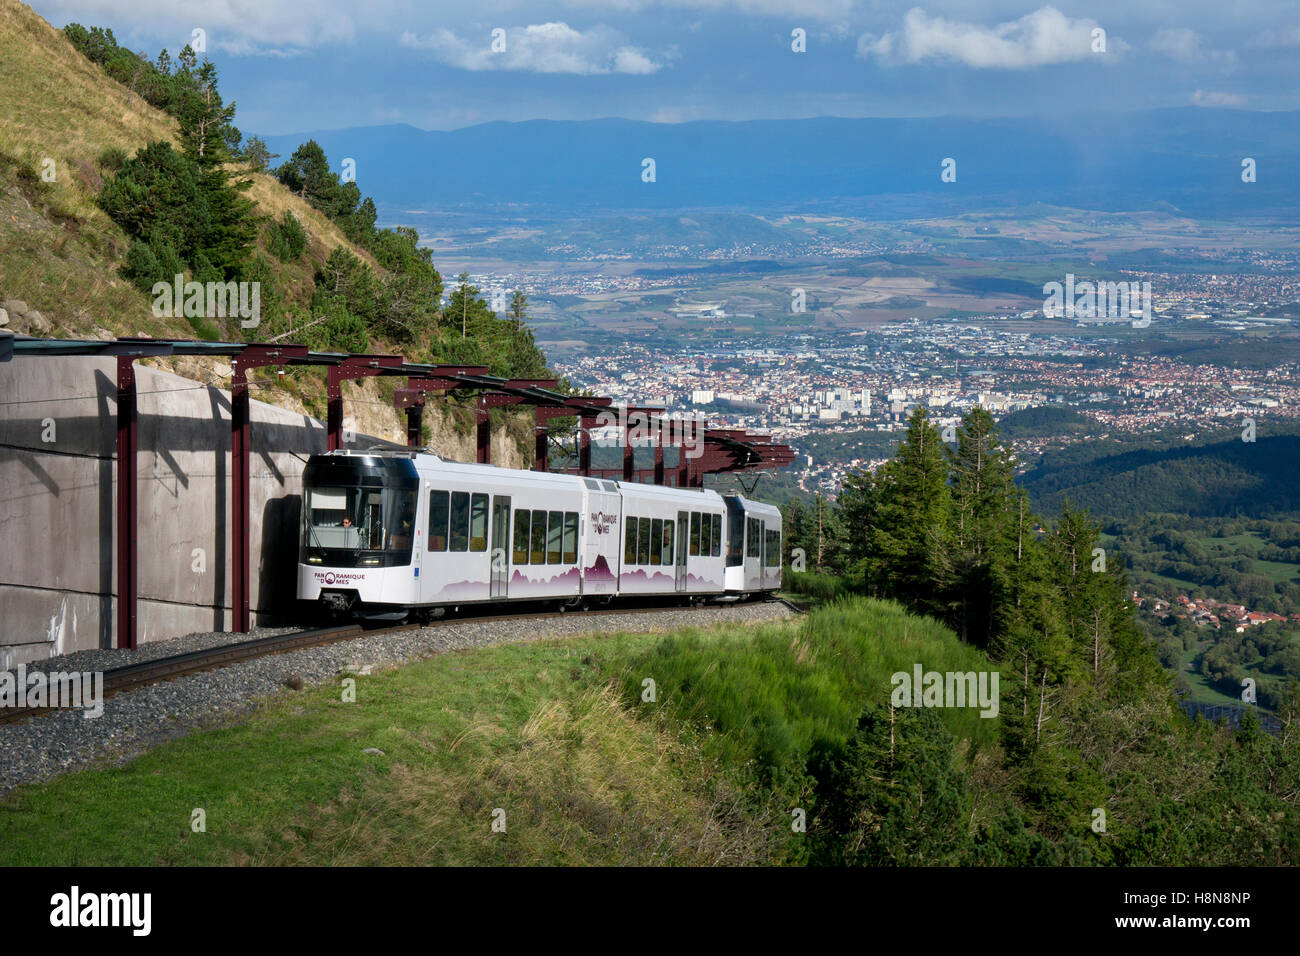 electric funicular panoramic railway on Puy de Dome summit, Auvergne,France - Stock Image